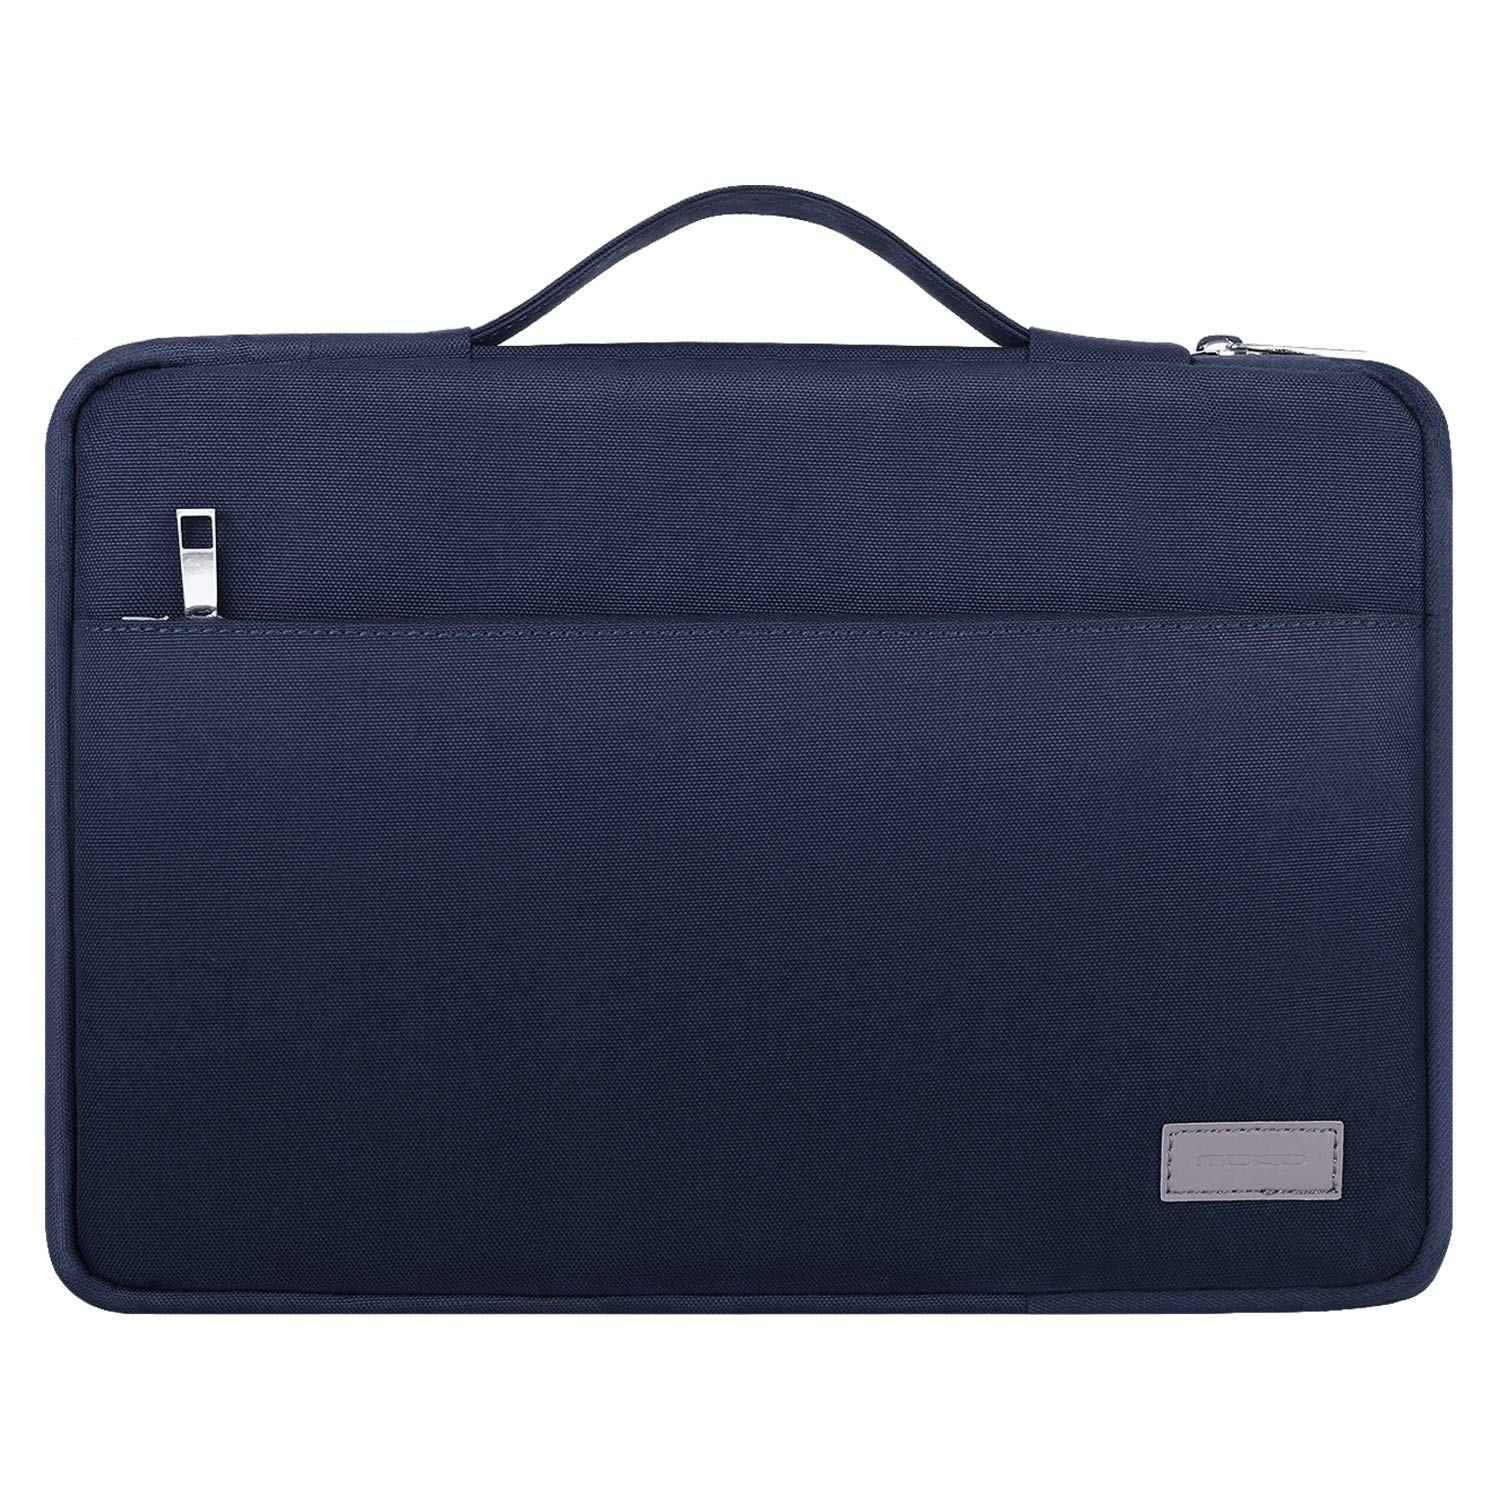 MoKo 8-10.1 Inch Kids Tablet Sleeve Case, Polyester Zipper Carrying Case Bag Fits Fire HD 10 / HD 8 Kids Edition, Kindle Fire HD 10.1 Inch 2019, with Accessory Pocket - Indigo